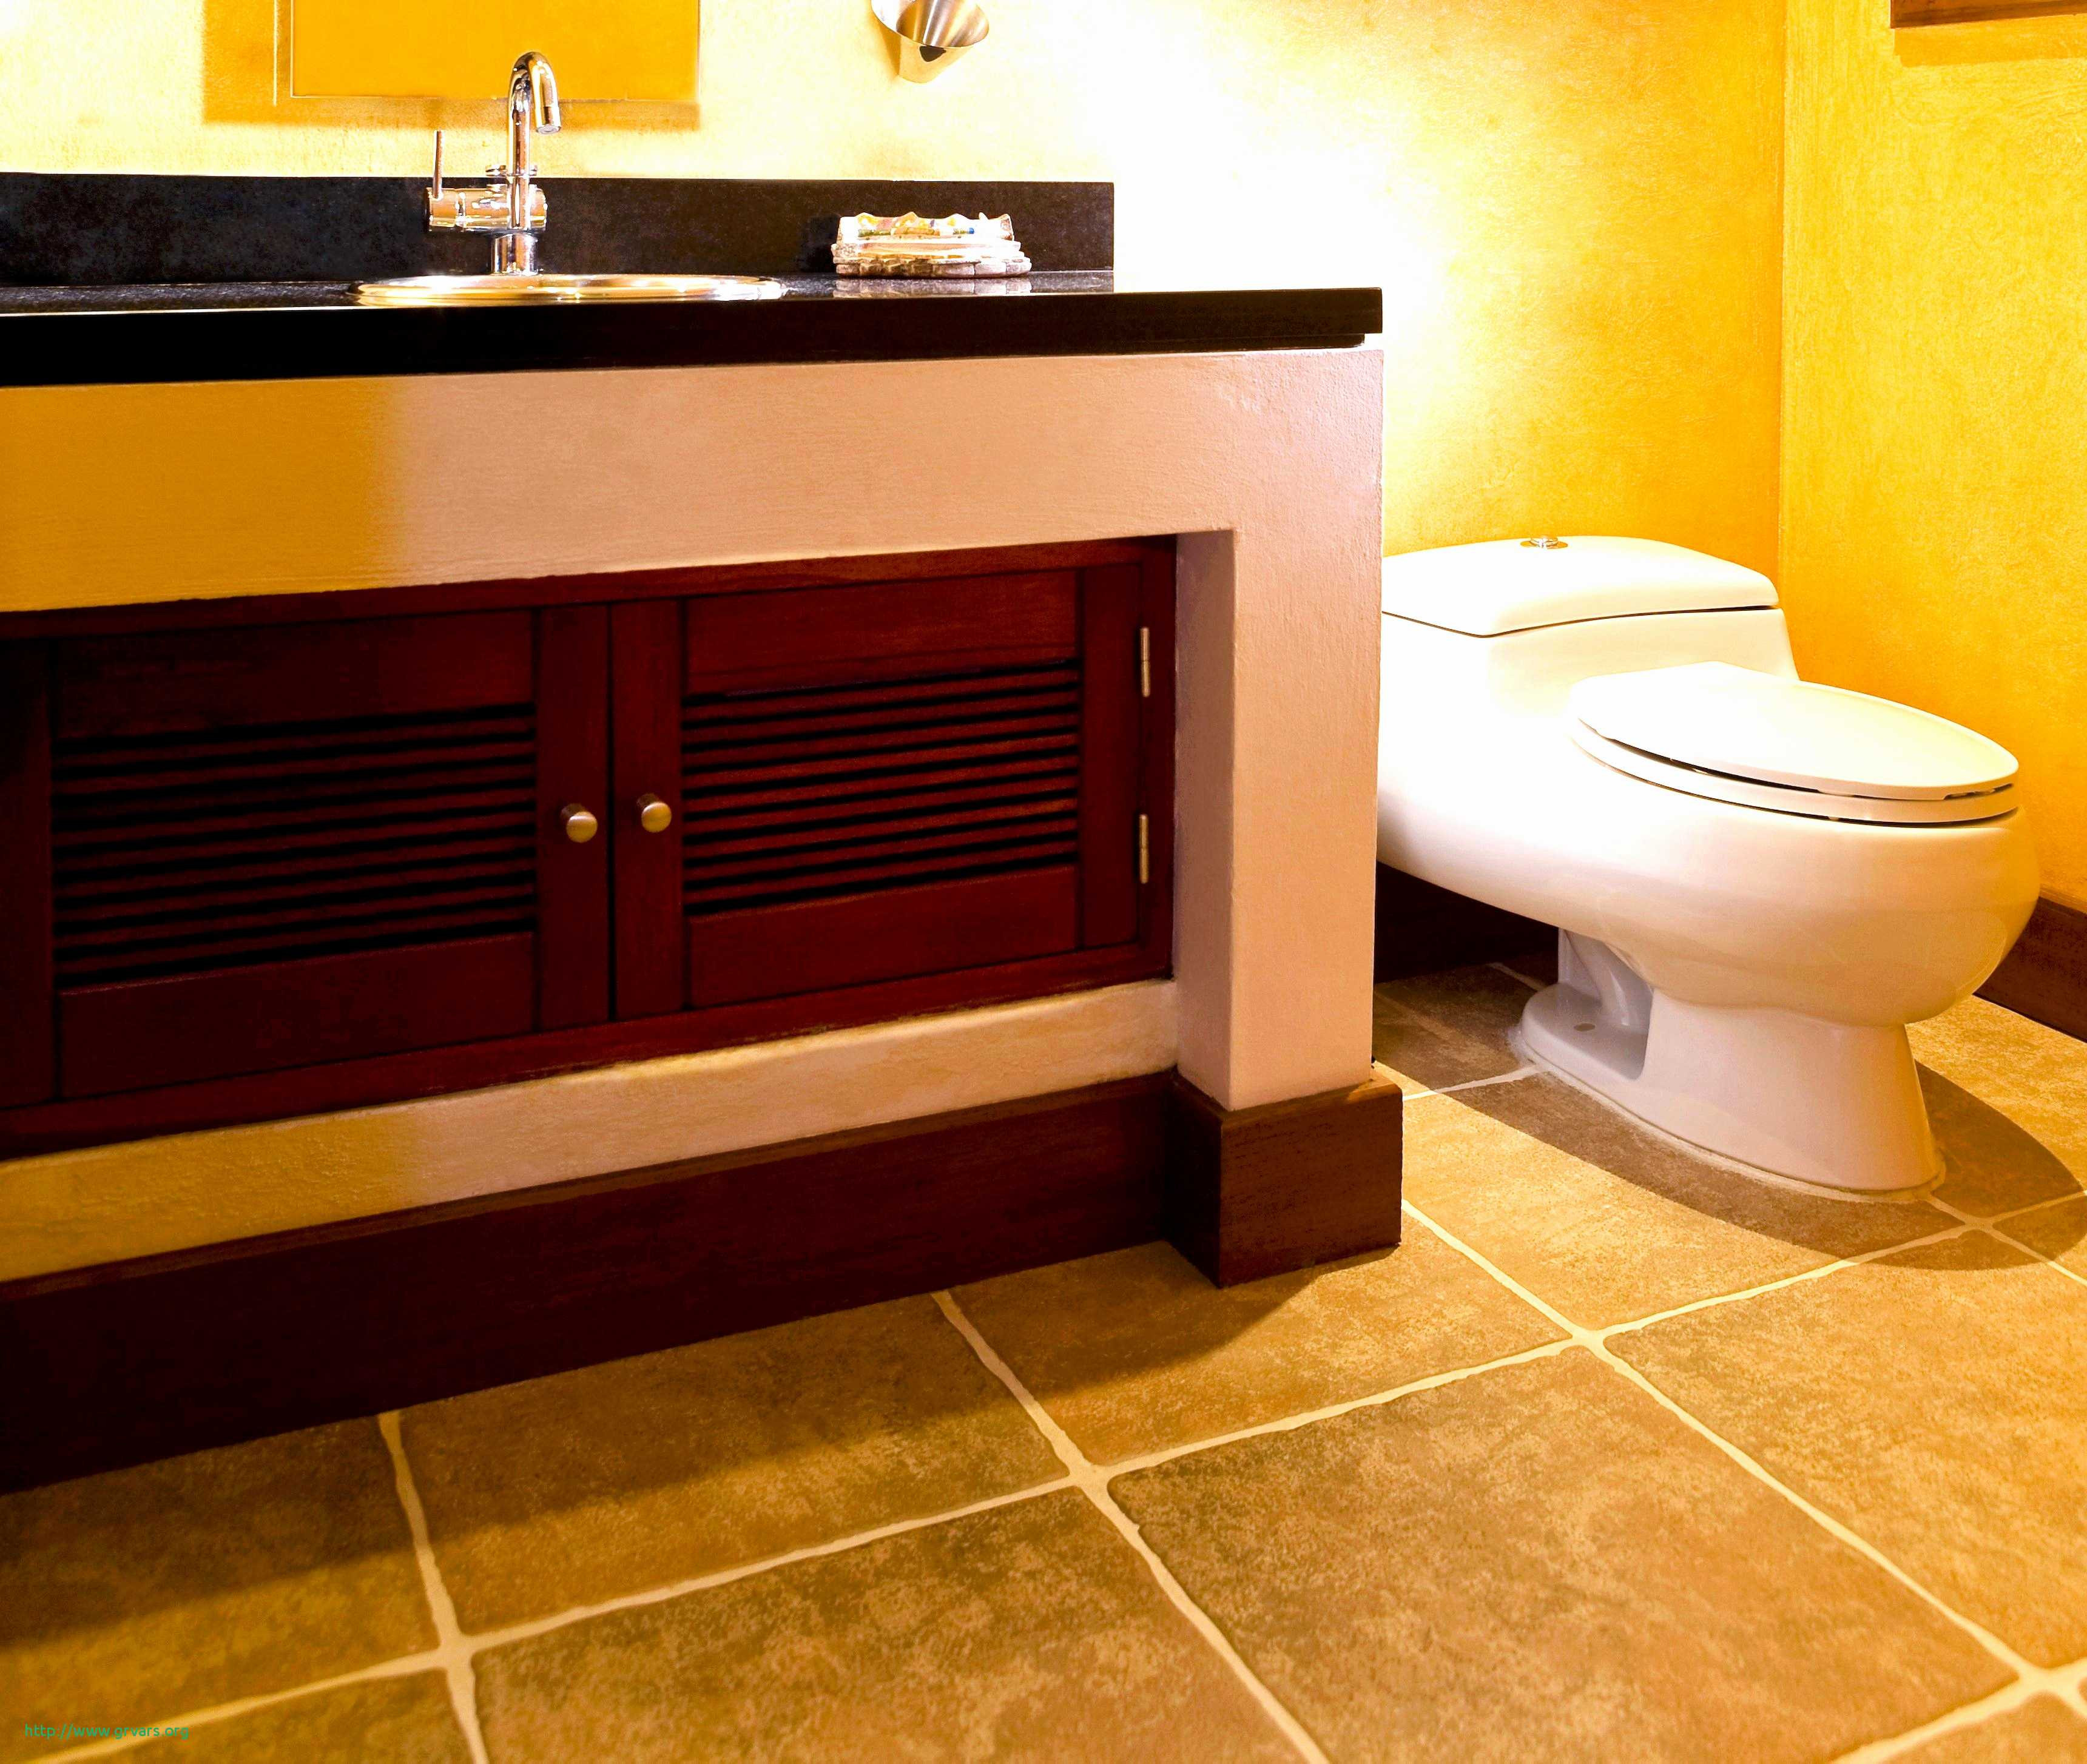 how much should it cost to install hardwood floors of 17 frais cost to replace flooring in home ideas blog throughout 0d exciting beautiful fresh bathroom floor replacement cost all about bathroom hardwood floor estimate how much would